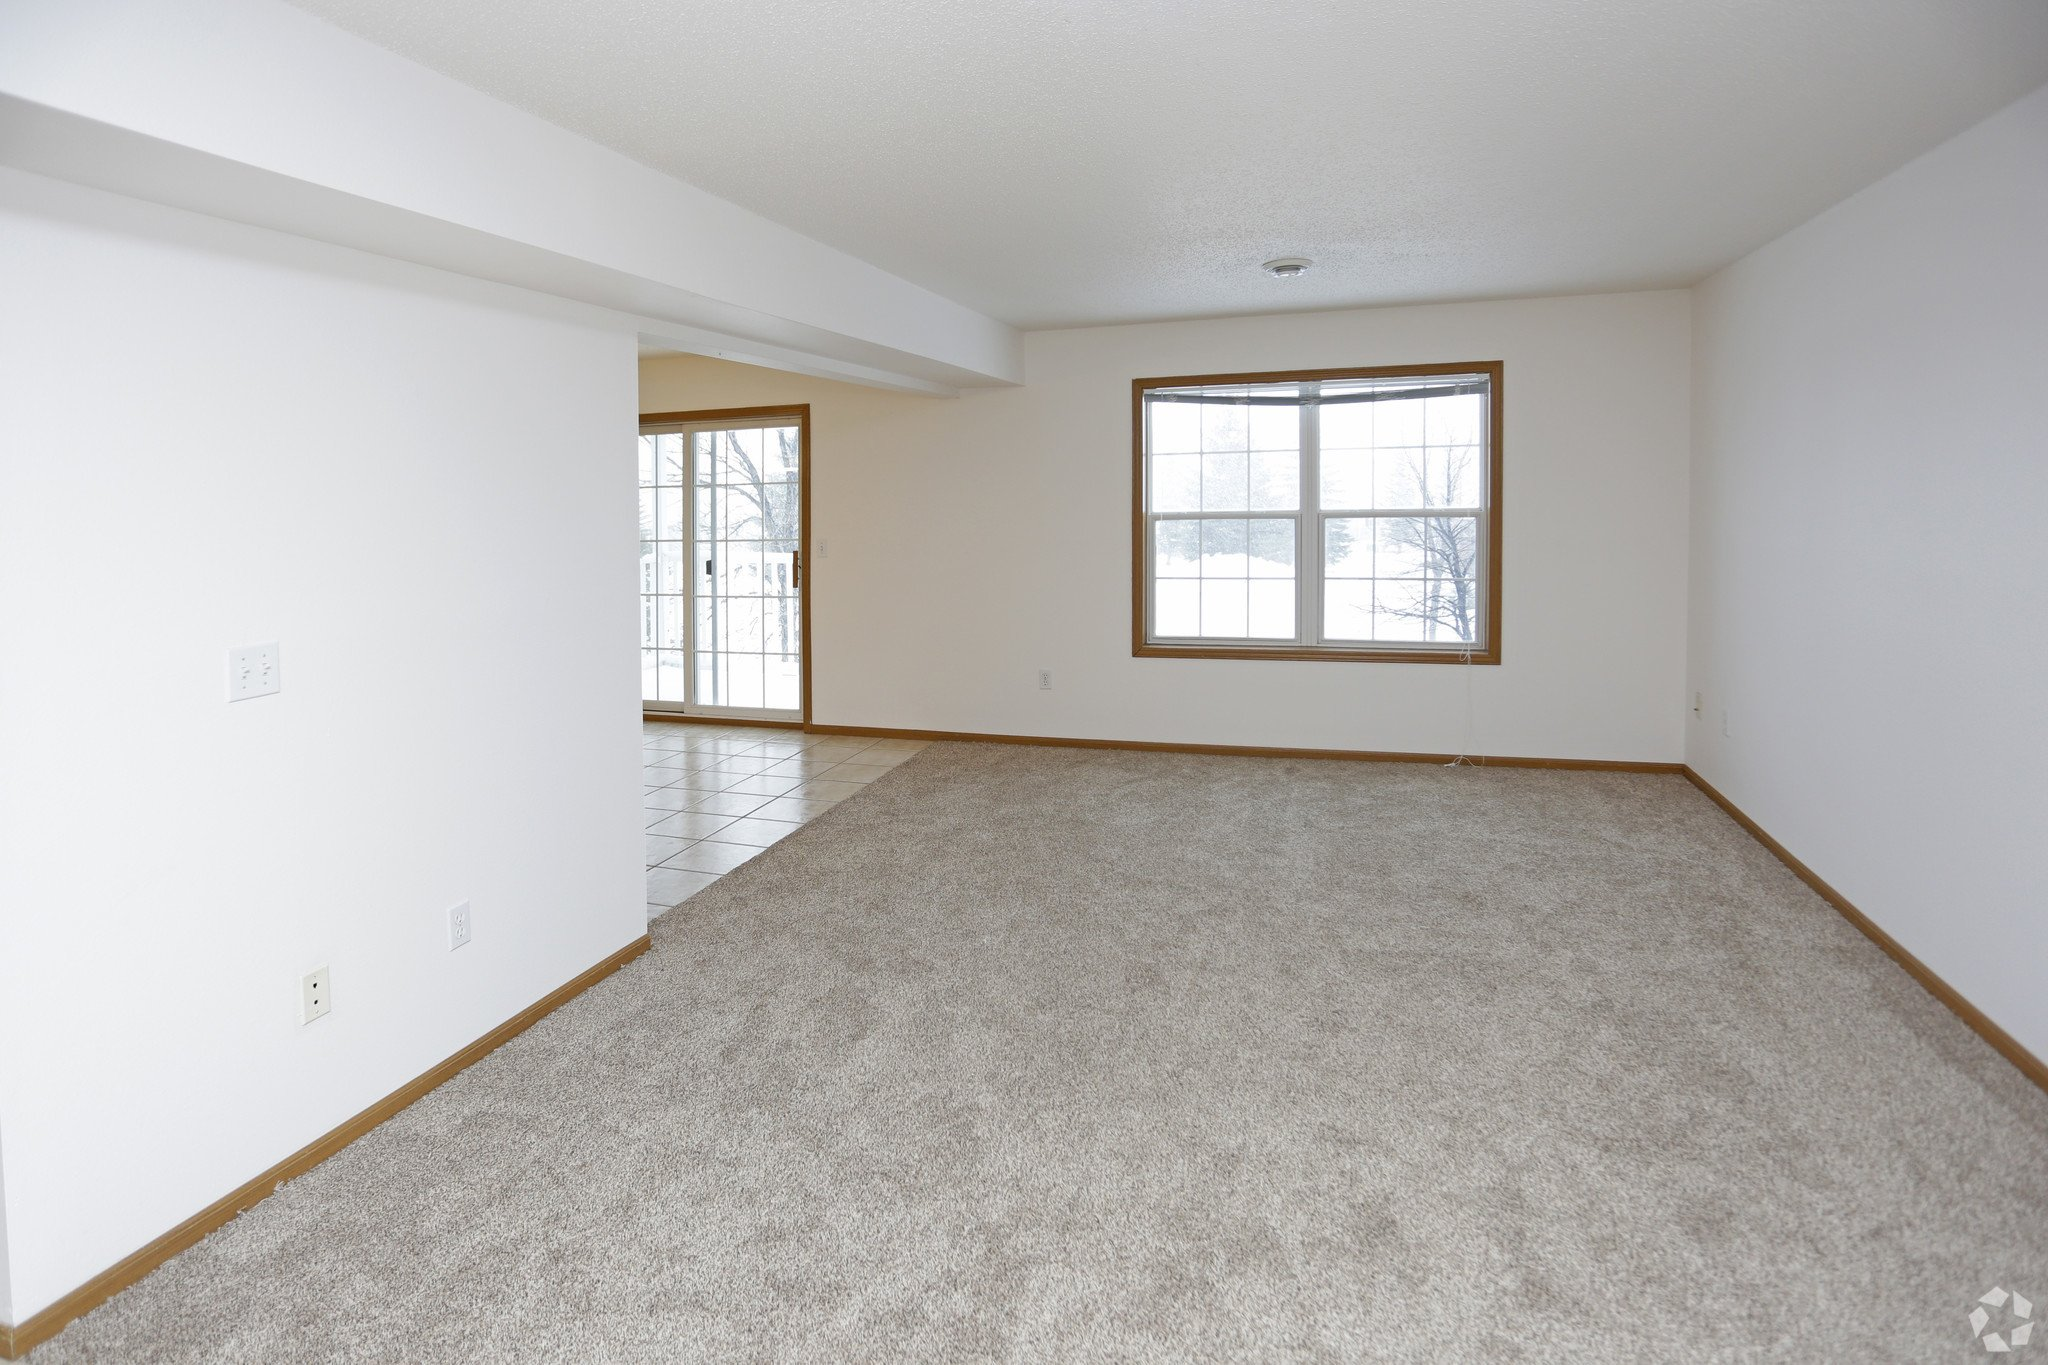 Times square townhomes grand forks nd 2 bedroom wden - 2 bedroom apartments grand forks nd ...